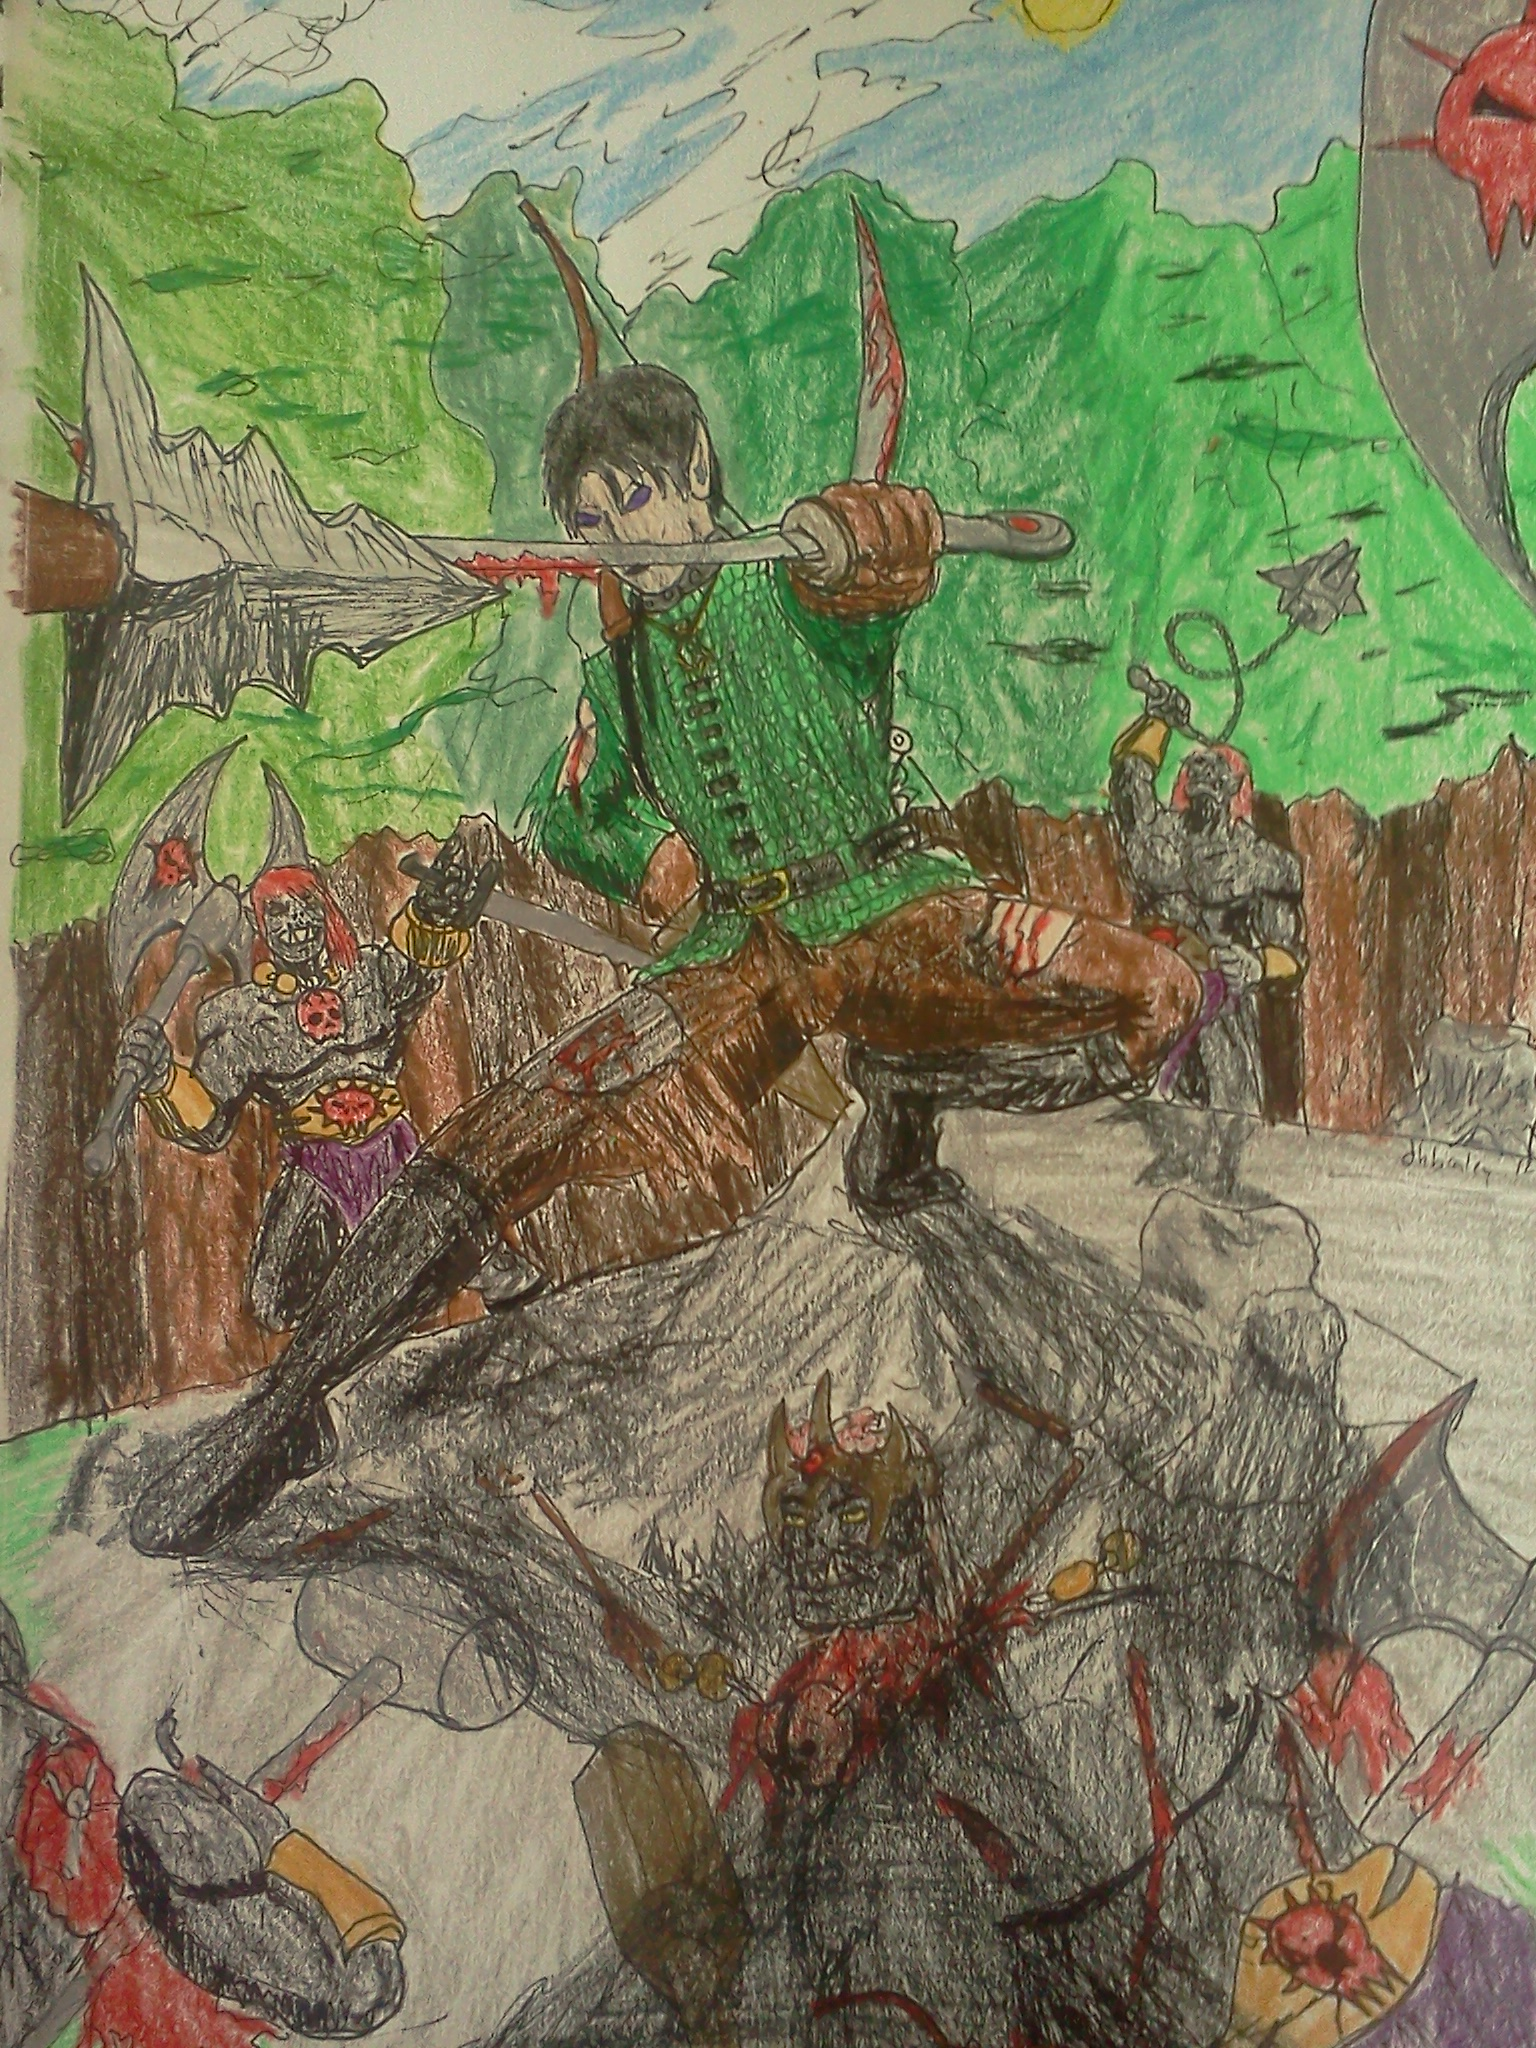 Riordan vs the Ogres by dhbraley